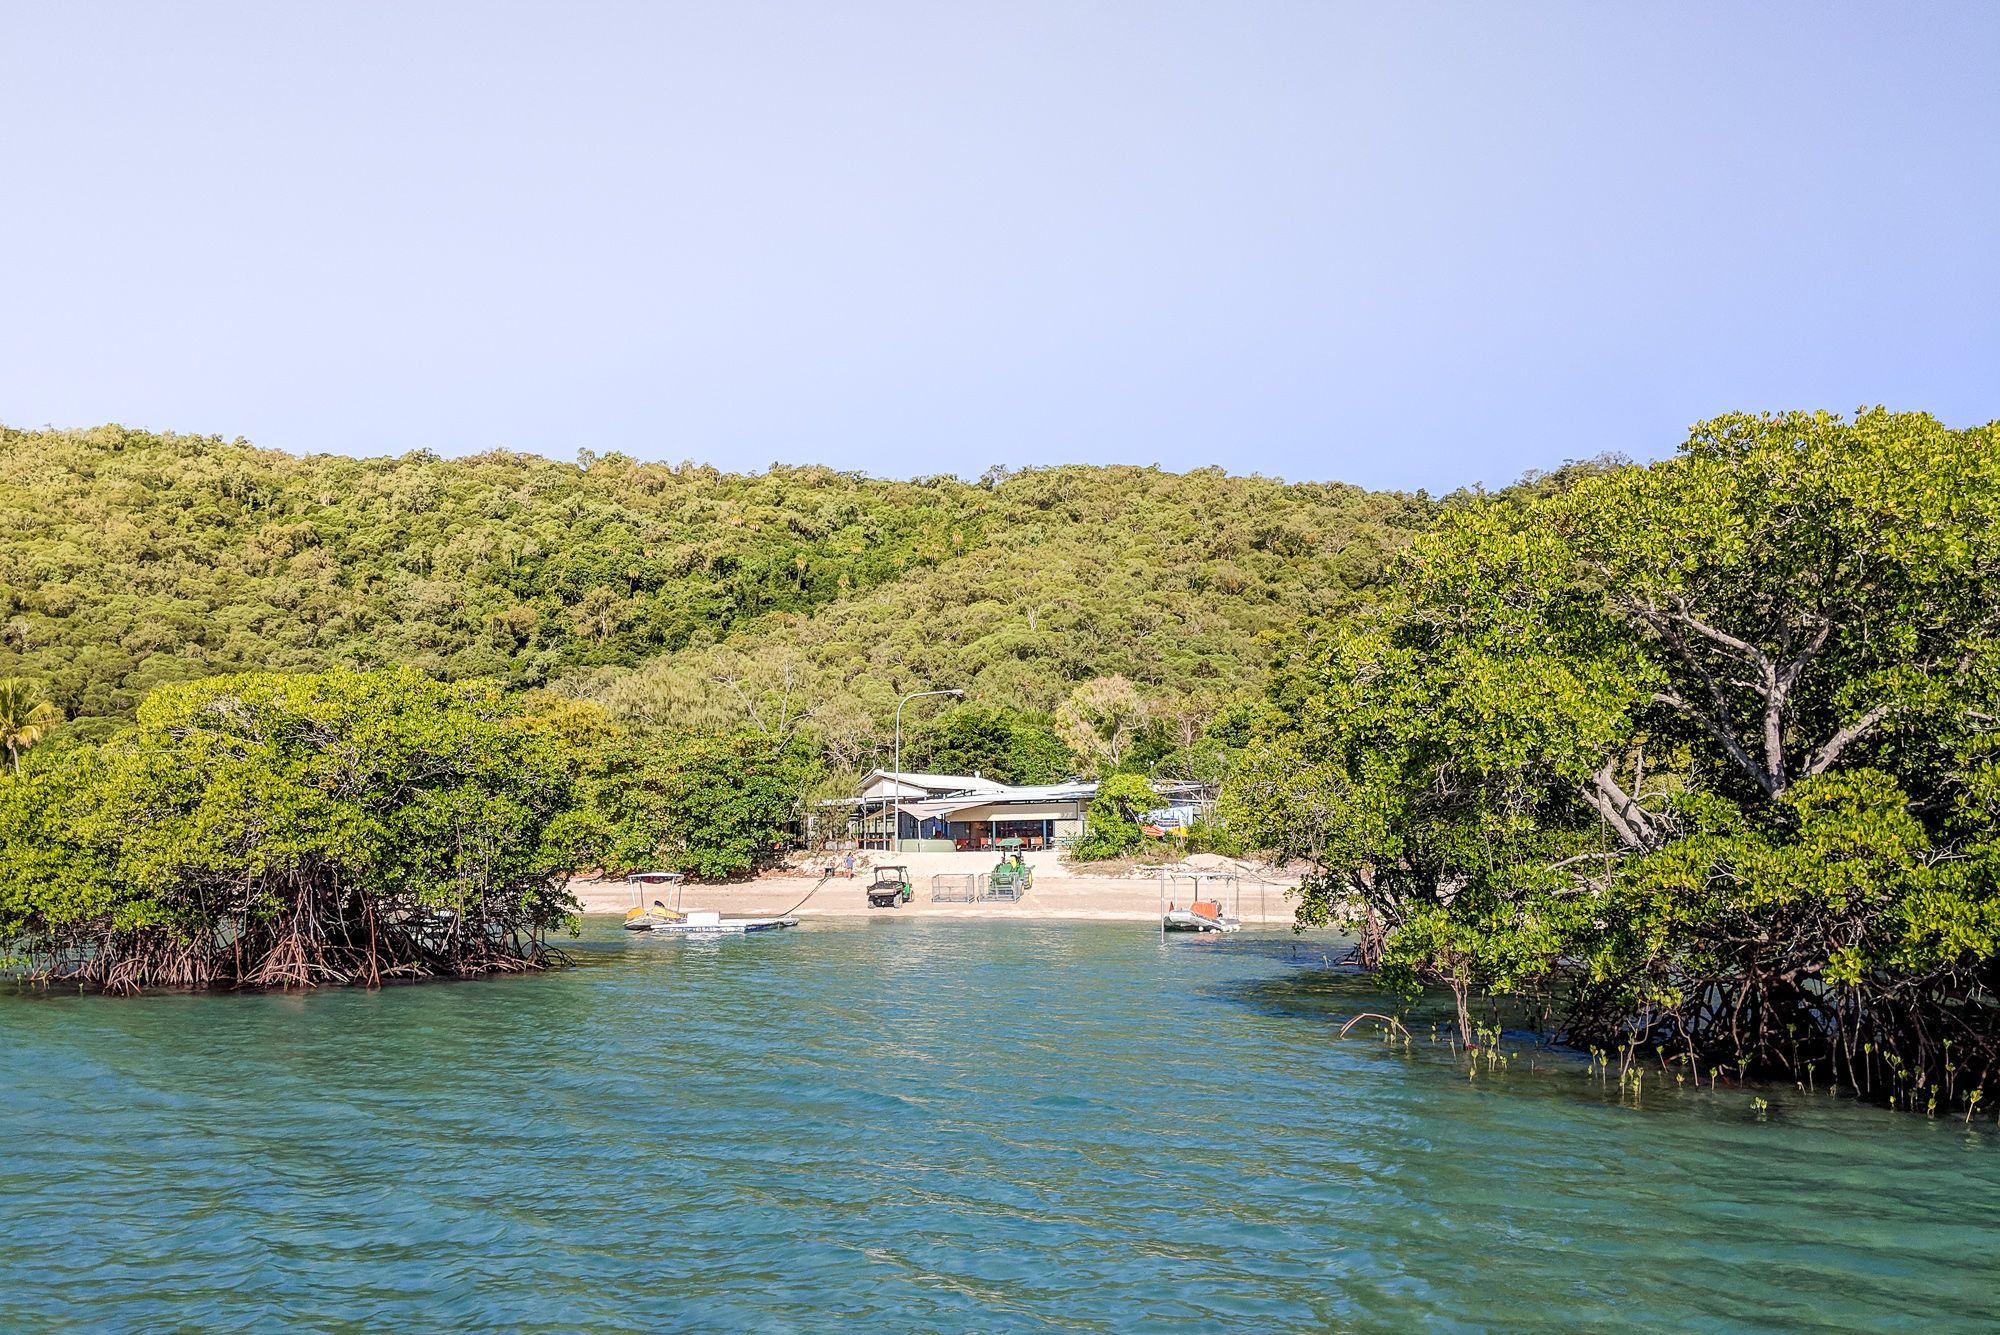 JCU Orpheus Island Research Station